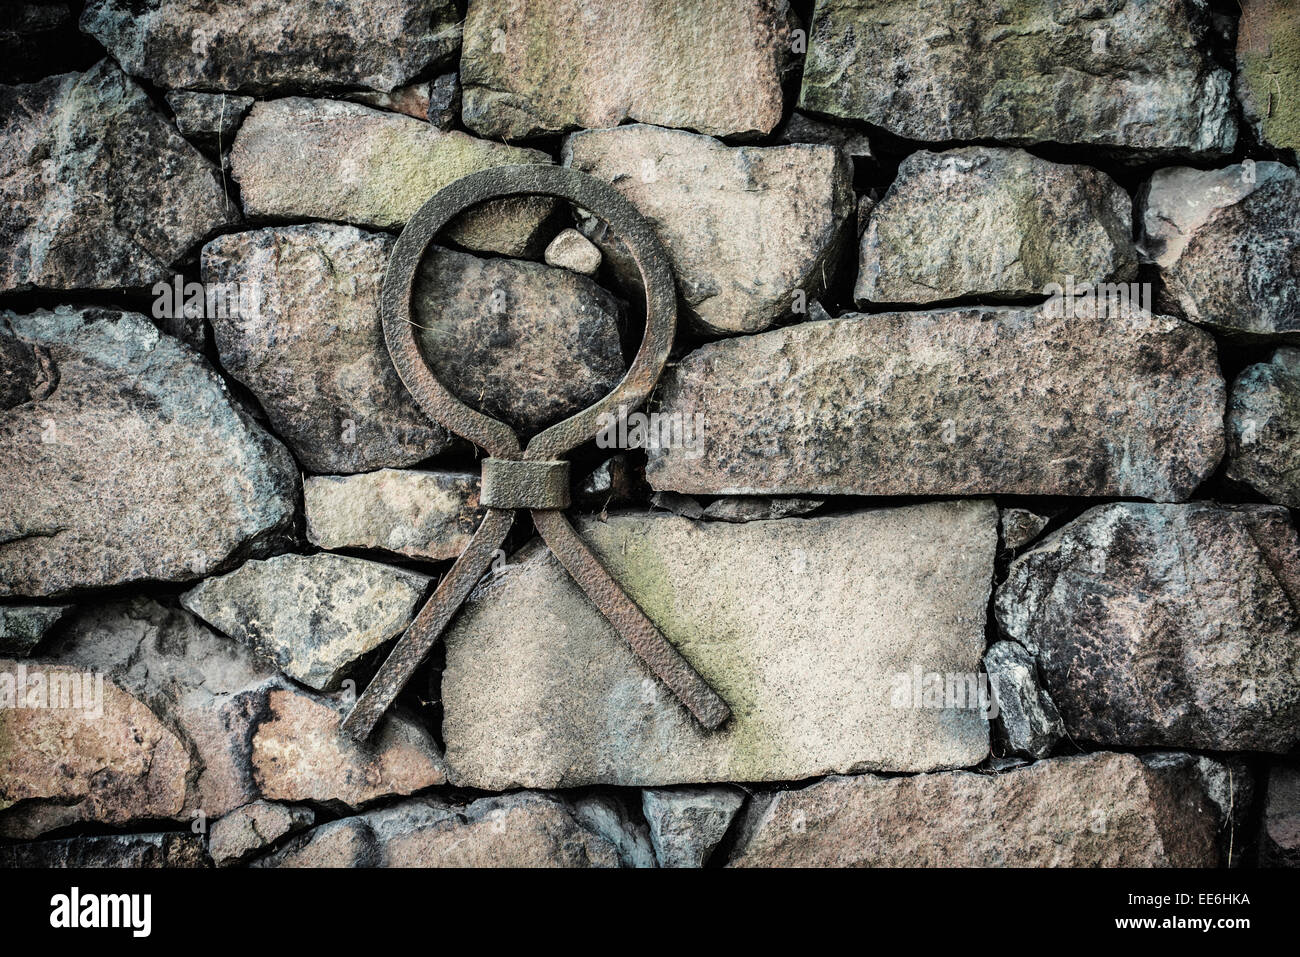 Old stone wall with iron reinforcement, Sweden - Stock Image